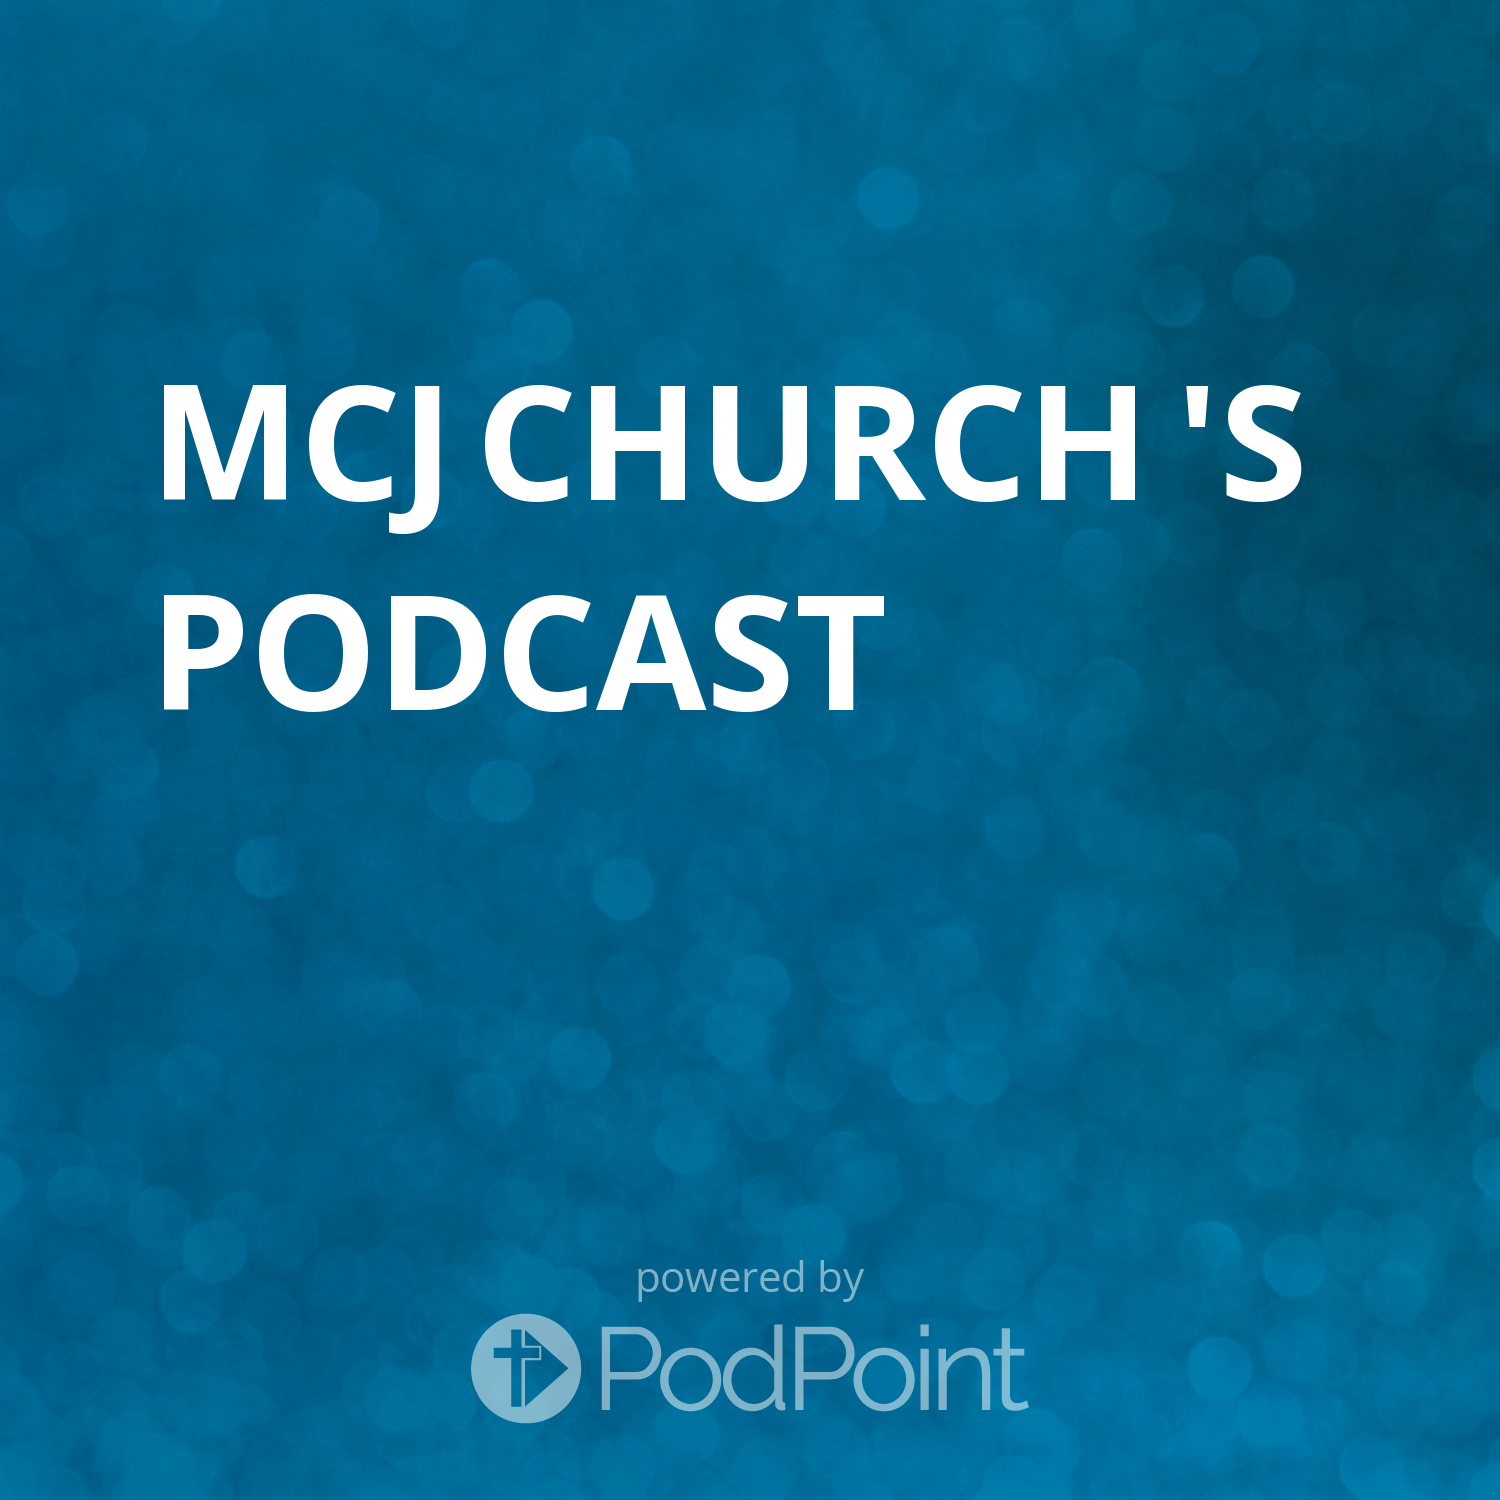 MCJ Church 's Podcast